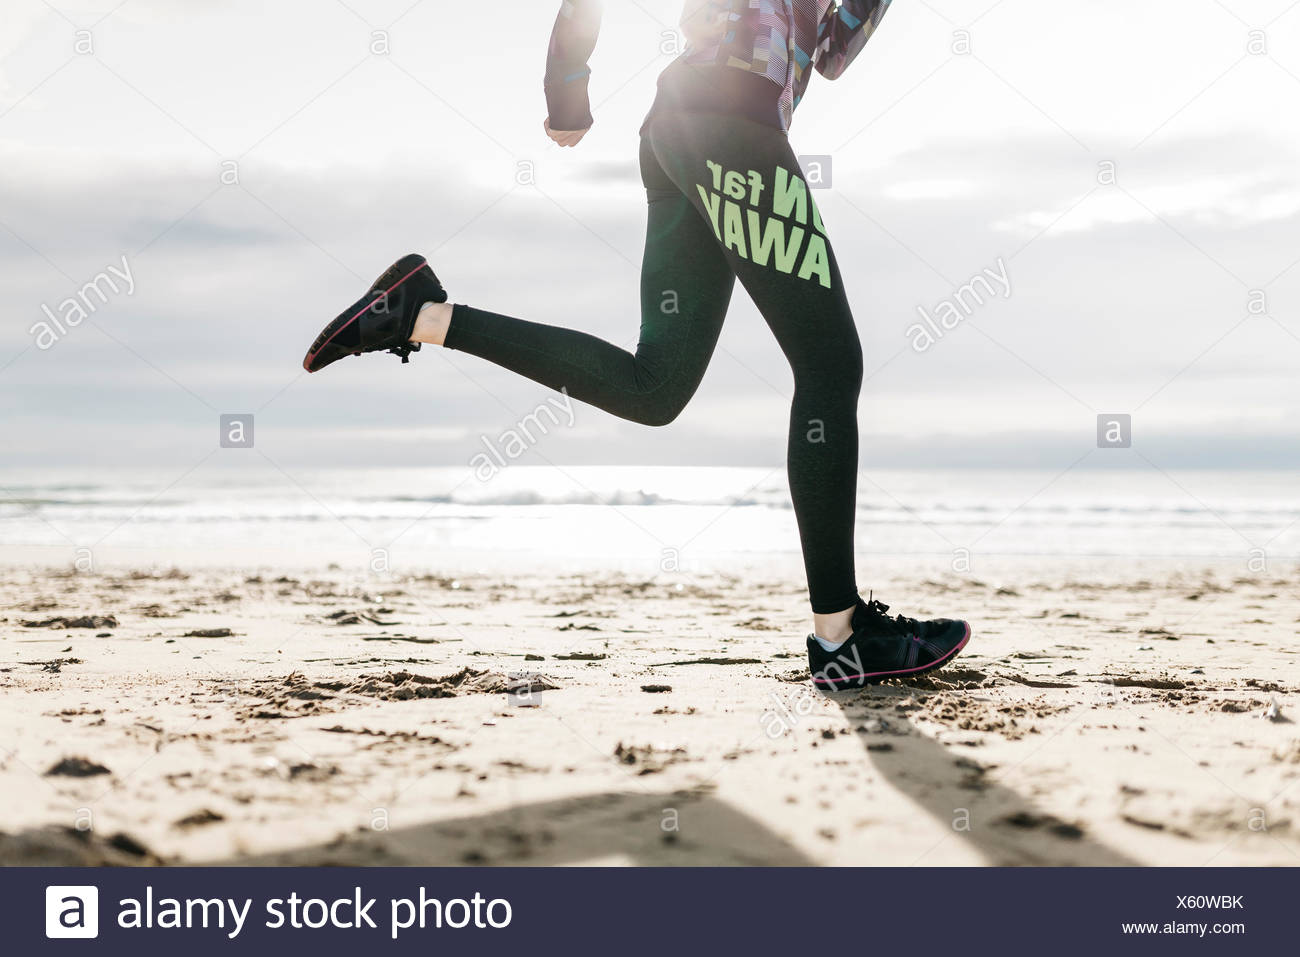 Spain, Tarragona, Legs and sneakers running in the sand of a beach - Stock Image